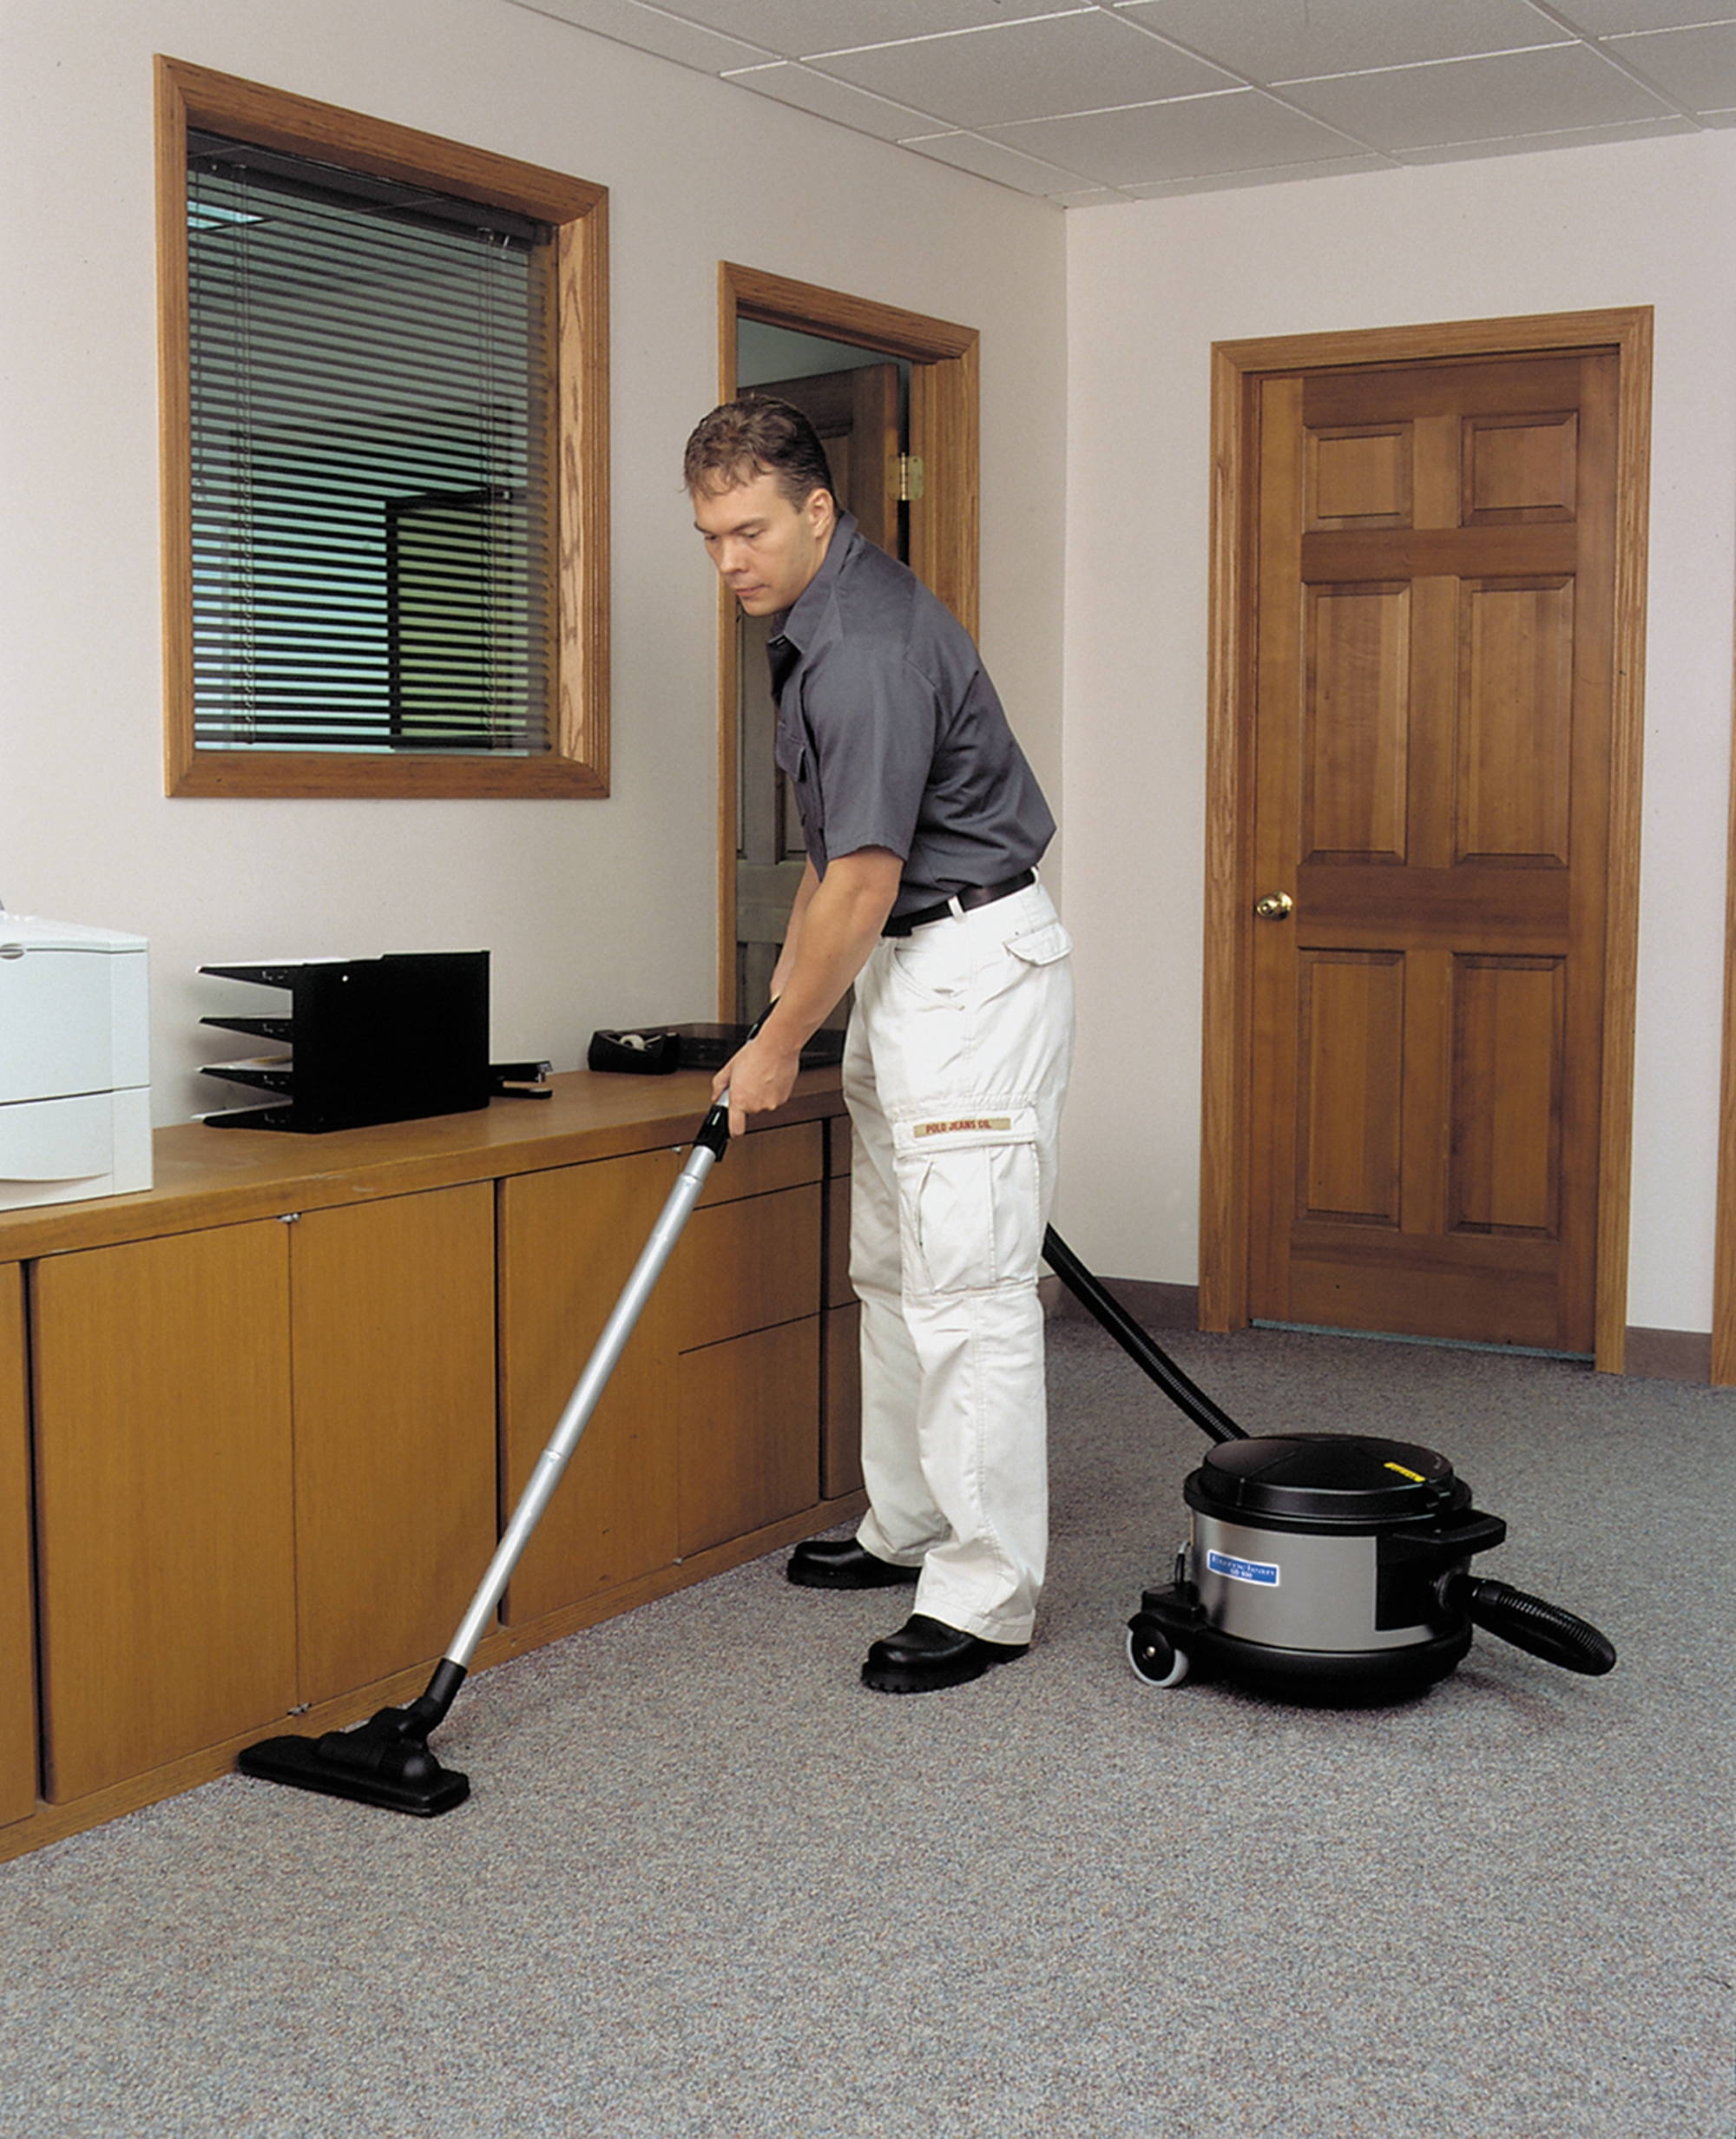 Product, Carpet Cleaning, Commercial Vacuum Cleaners, Canister Vacuum Cleaners, Nilfisk, GD930SP